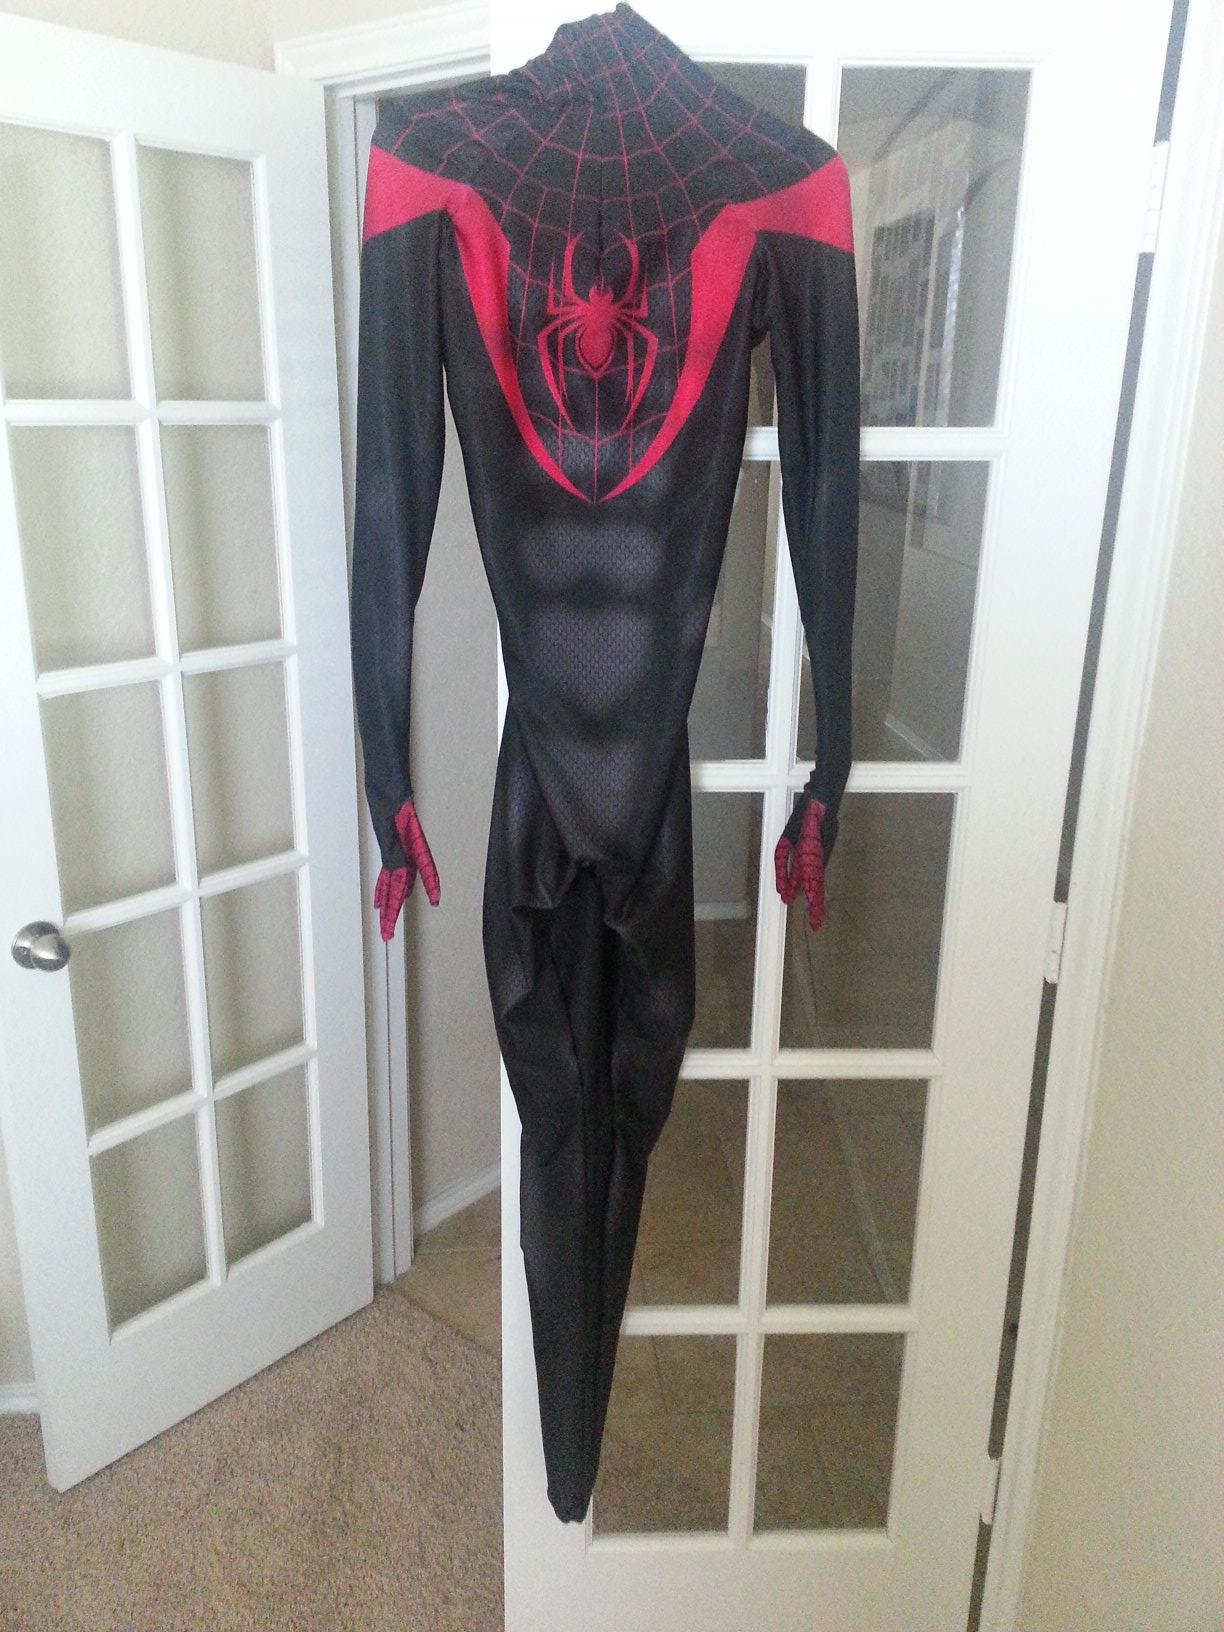 Miles Morales front 1